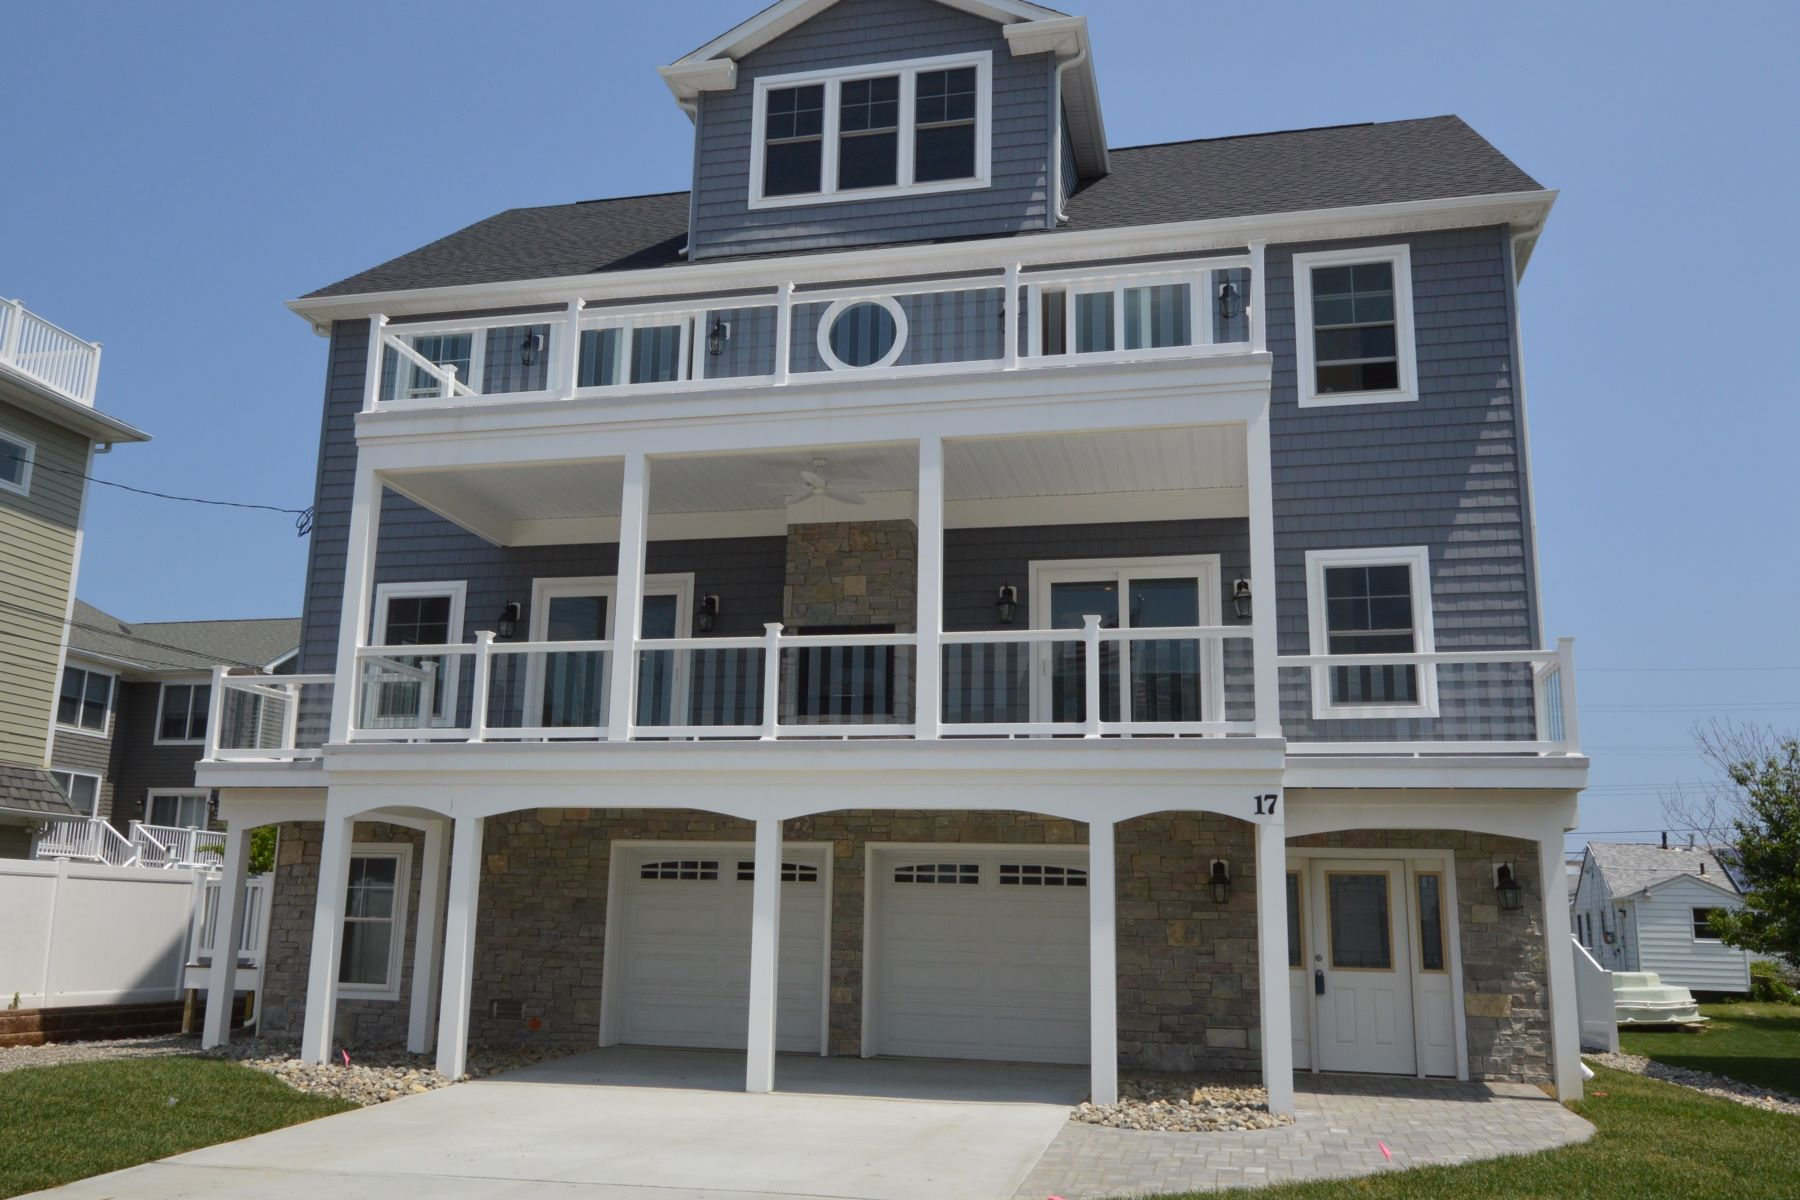 Maison unifamiliale pour l Vente à Sea Bright NJ - Seashore Colonial 17 Longview Way Sea Bright, New Jersey 07760 États-Unis